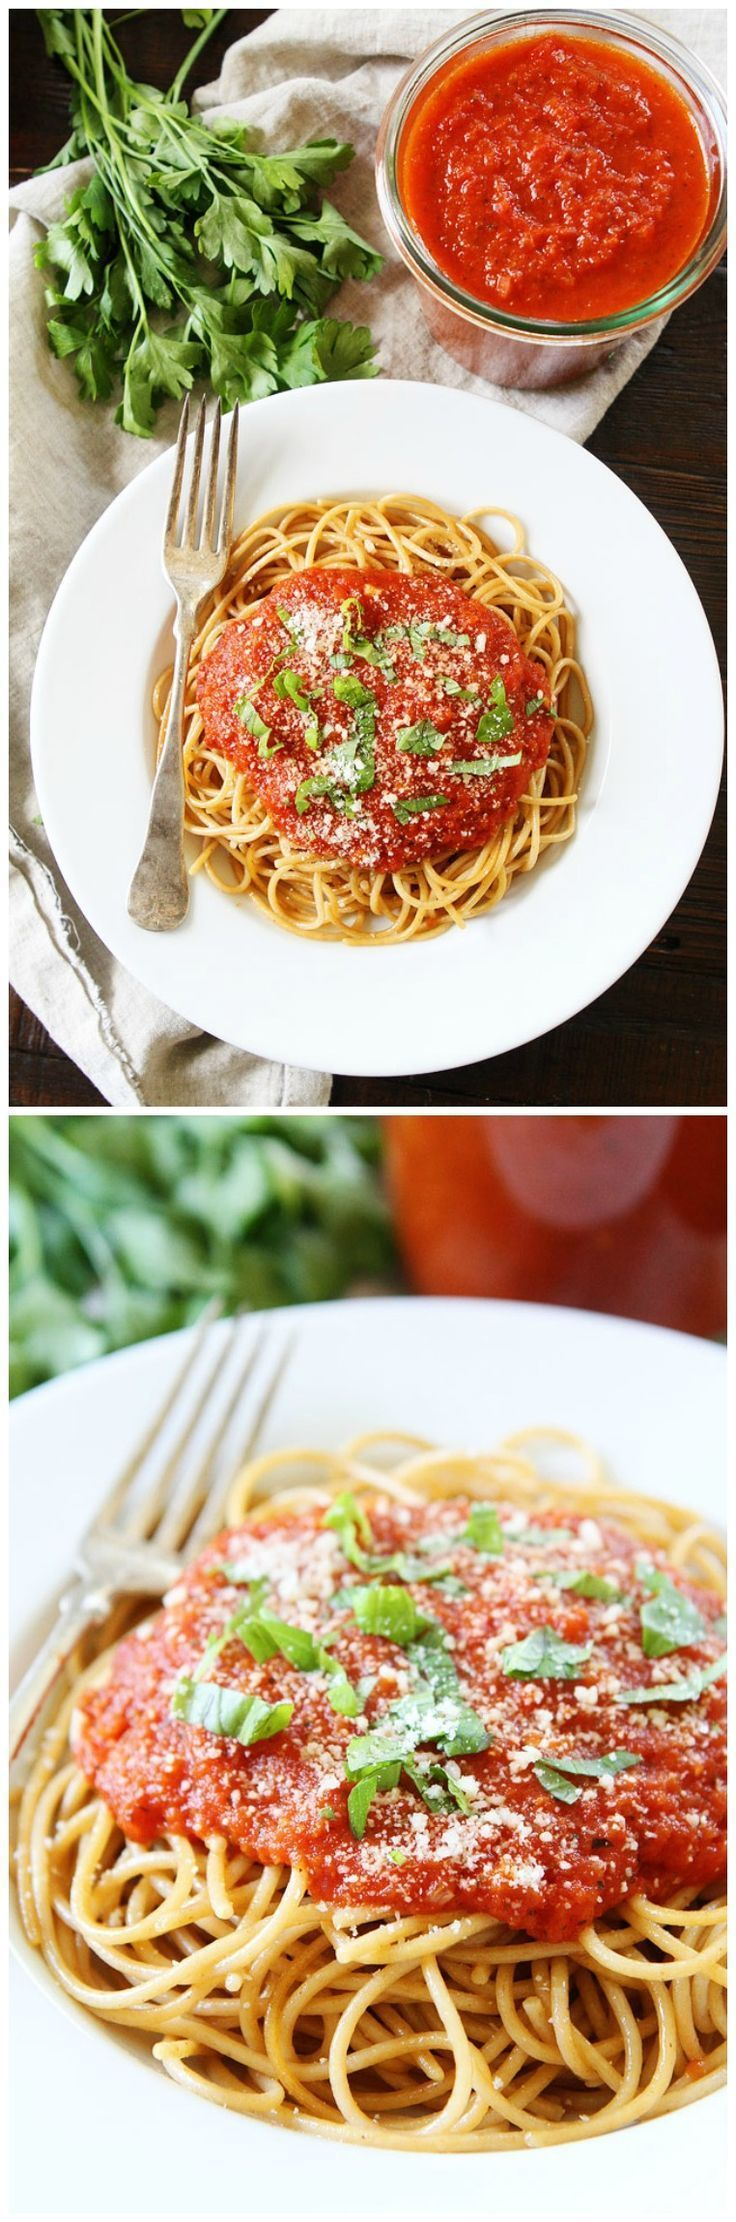 Slow Cooker Marinara Sauce Recipe on http://twopeasandtheirpod.com This rich and hearty marinara sauce has the BEST flavor because it is made in the slow cooker. You will love this simple sauce! And it freezes well too!